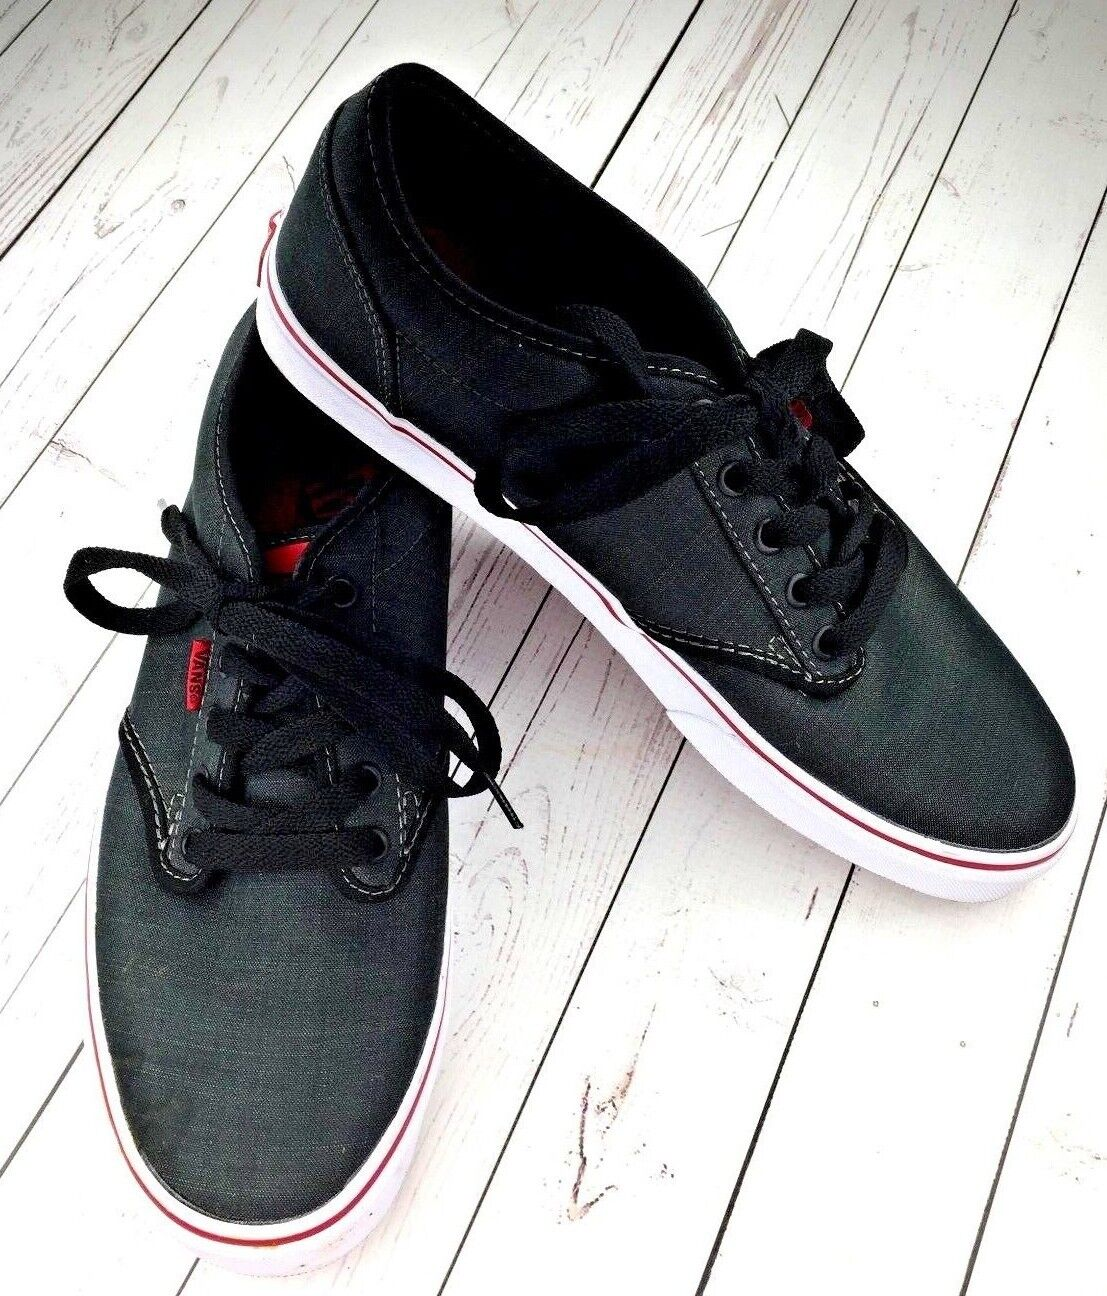 81a37aa6a3 Vans Atwood Skate Mens SZ 10 Charcoal Charcoal Charcoal Casual Sneakers  Dark Gray Red Very Good